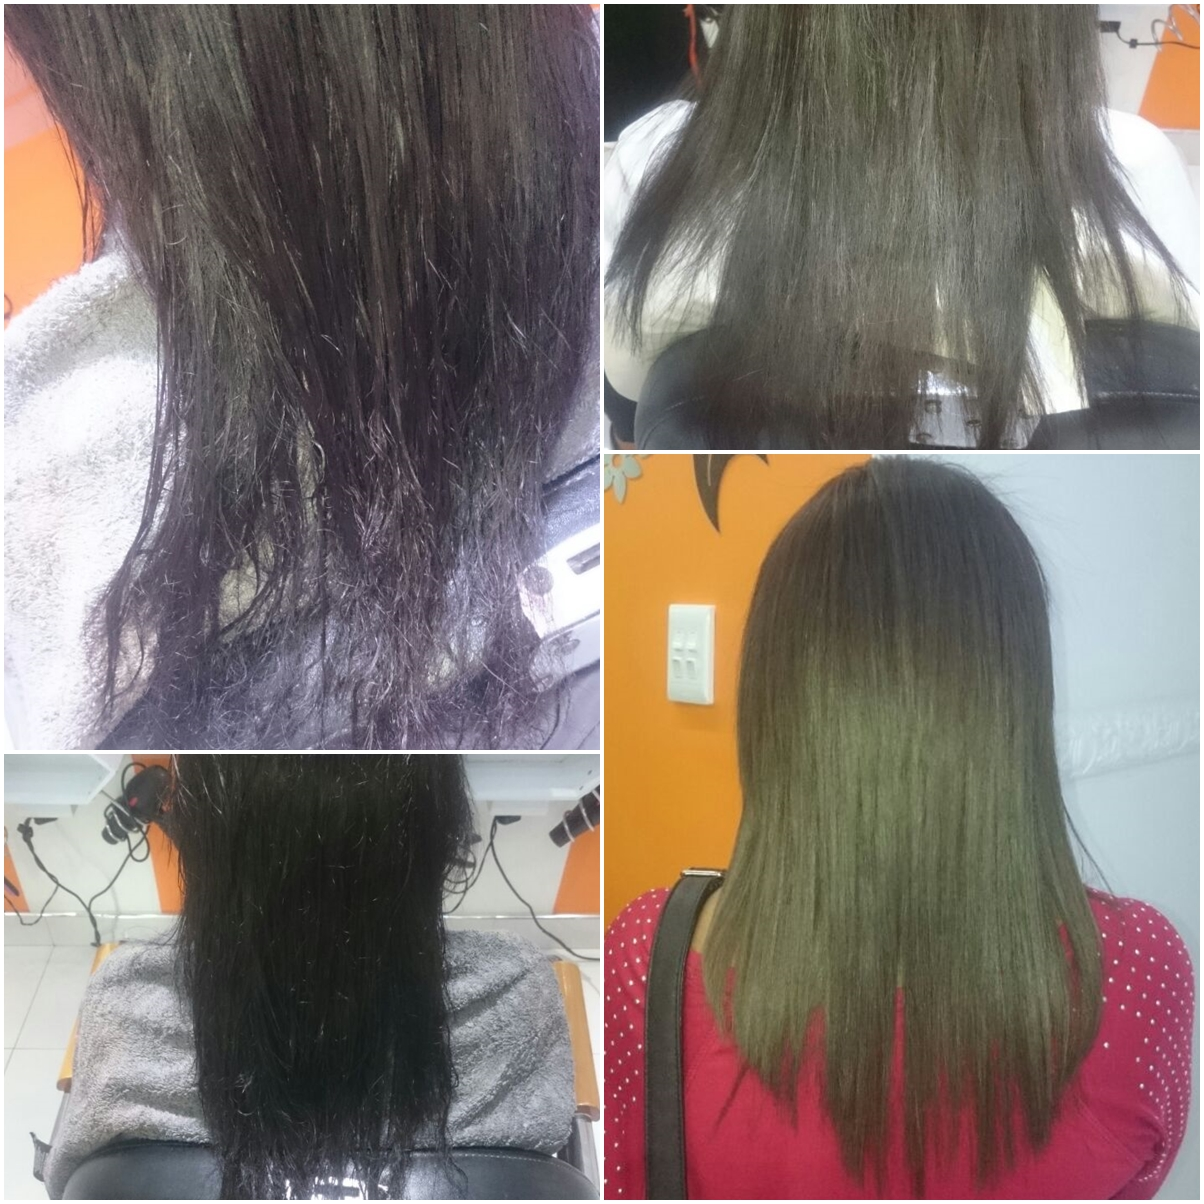 KERATIN TREATMENT AVAILABLE AT SALON CLEO PHOENIX 0315009998 ANTI FRIZZ HAIR STRAIGHTENING TREATMENT SALON CLEO 0315002353